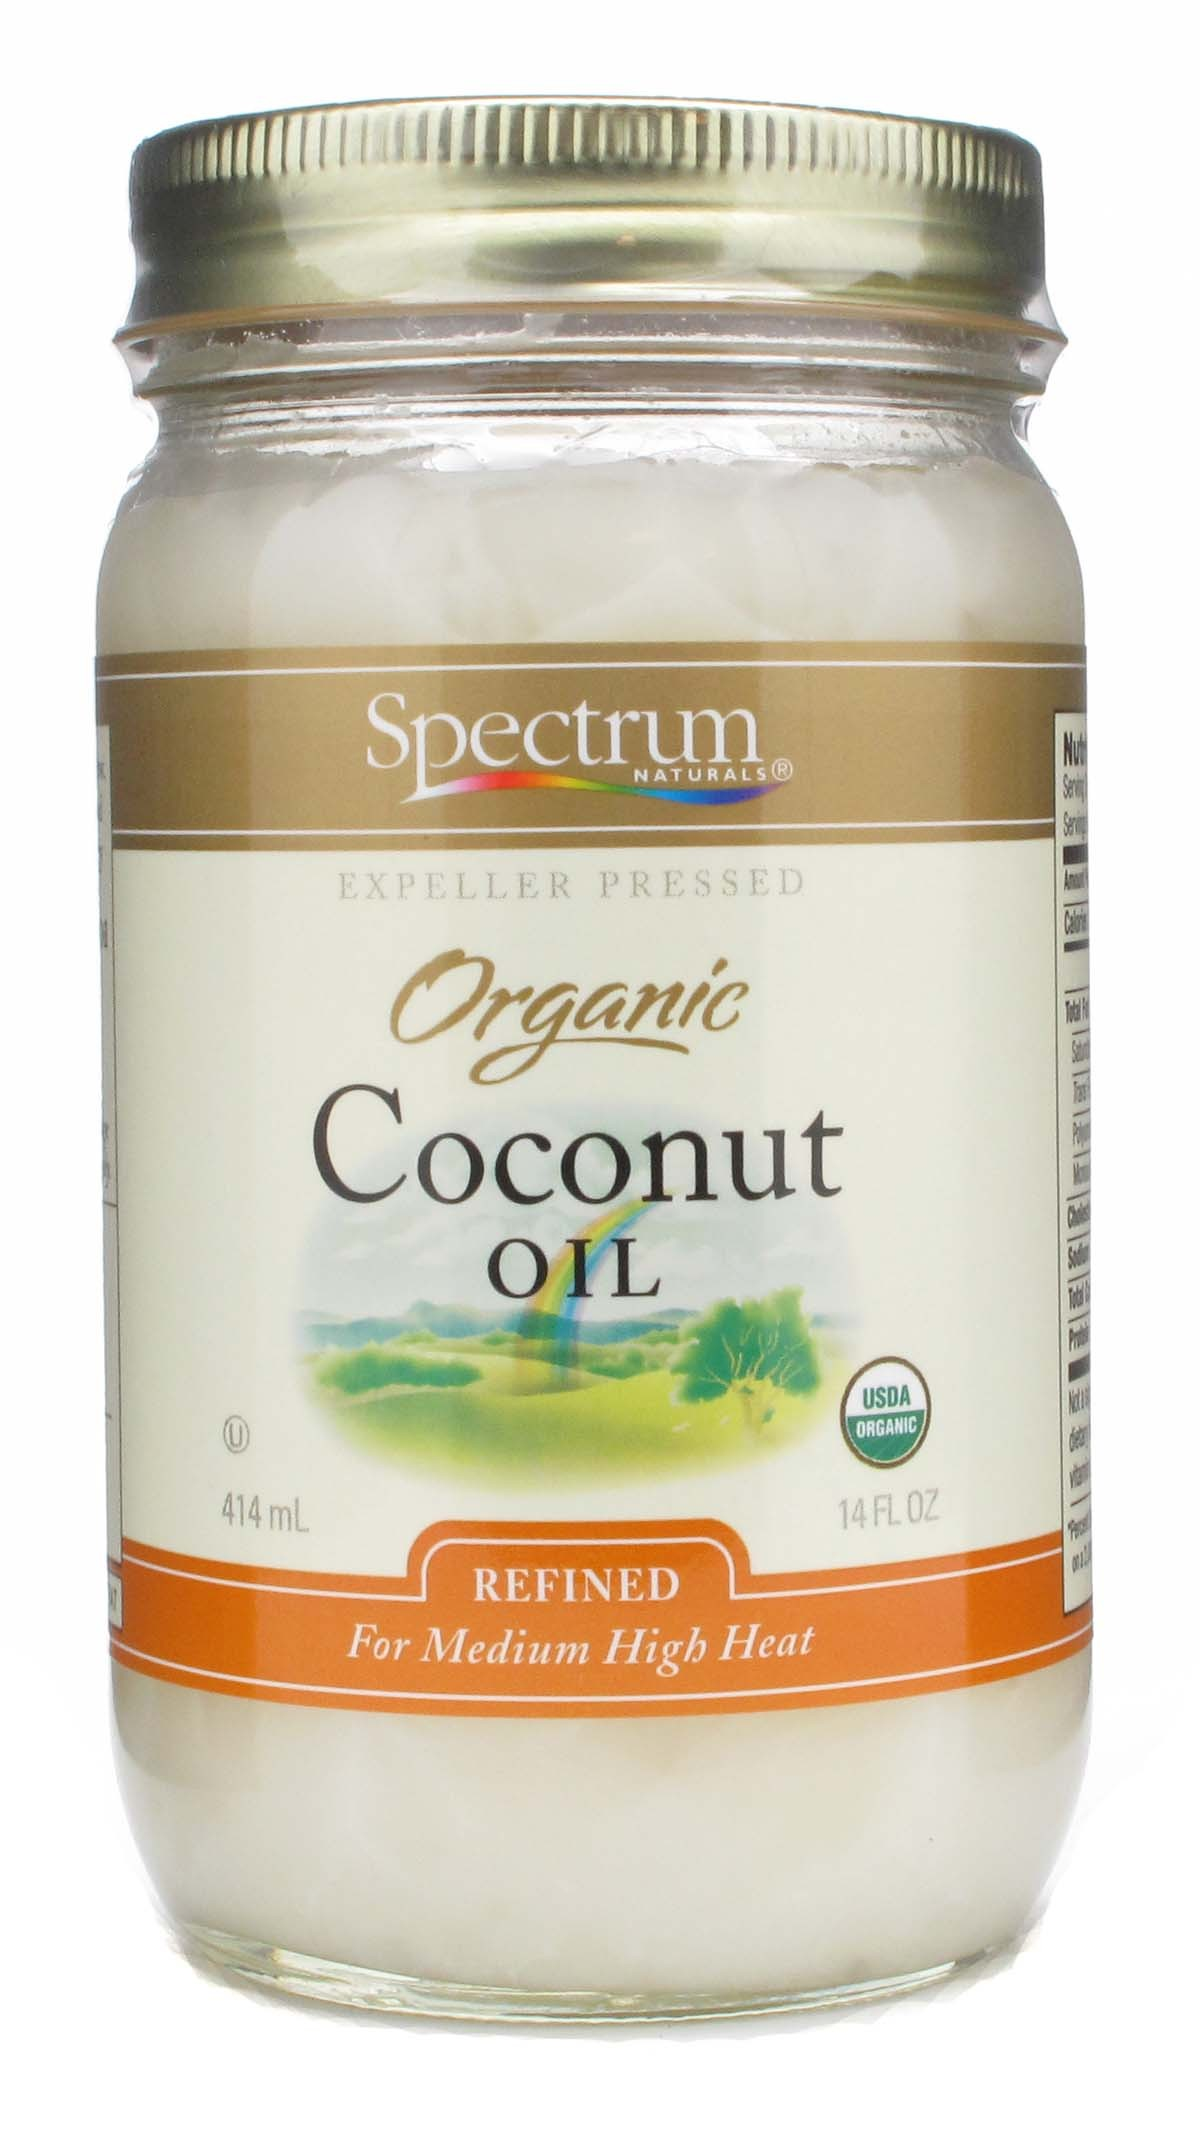 What is unrefined coconut oil?